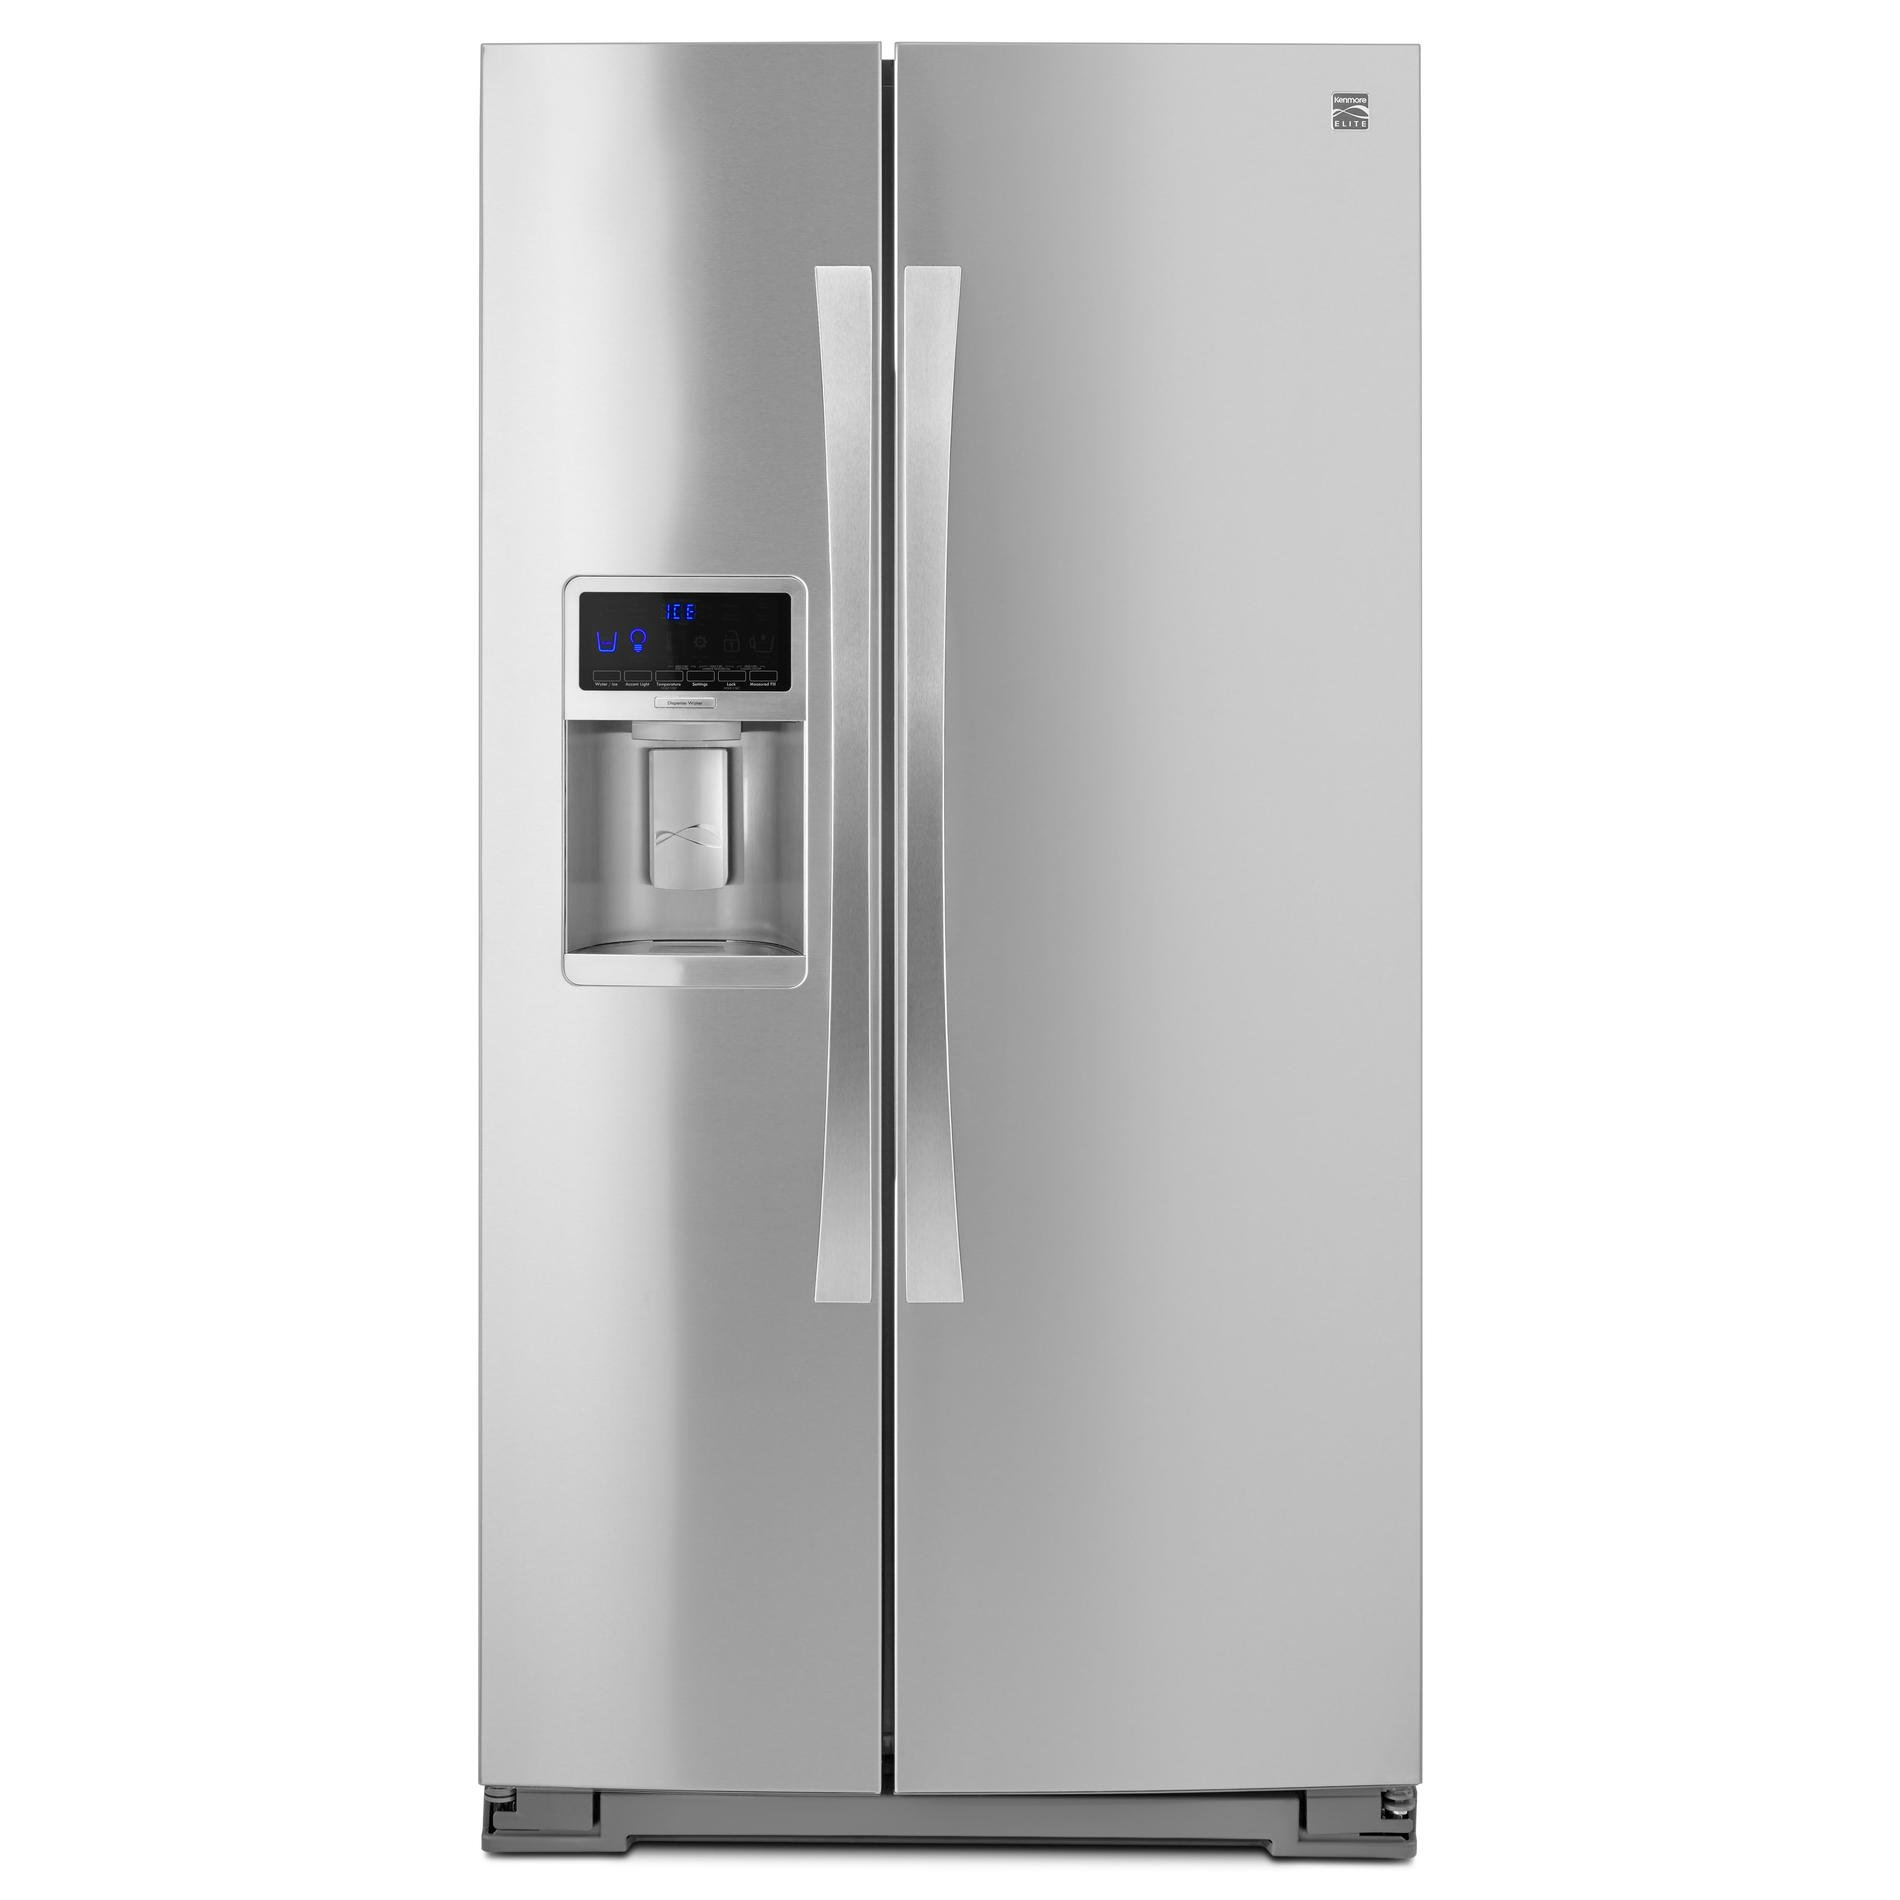 Kenmore Elite 51773 28 cu. ft. Side-by-Side Refrigerator with Accela Ice Technology in Stainless Steel, includes delivery and hookup (Available in select cities only) by Kenmore (Image #1)